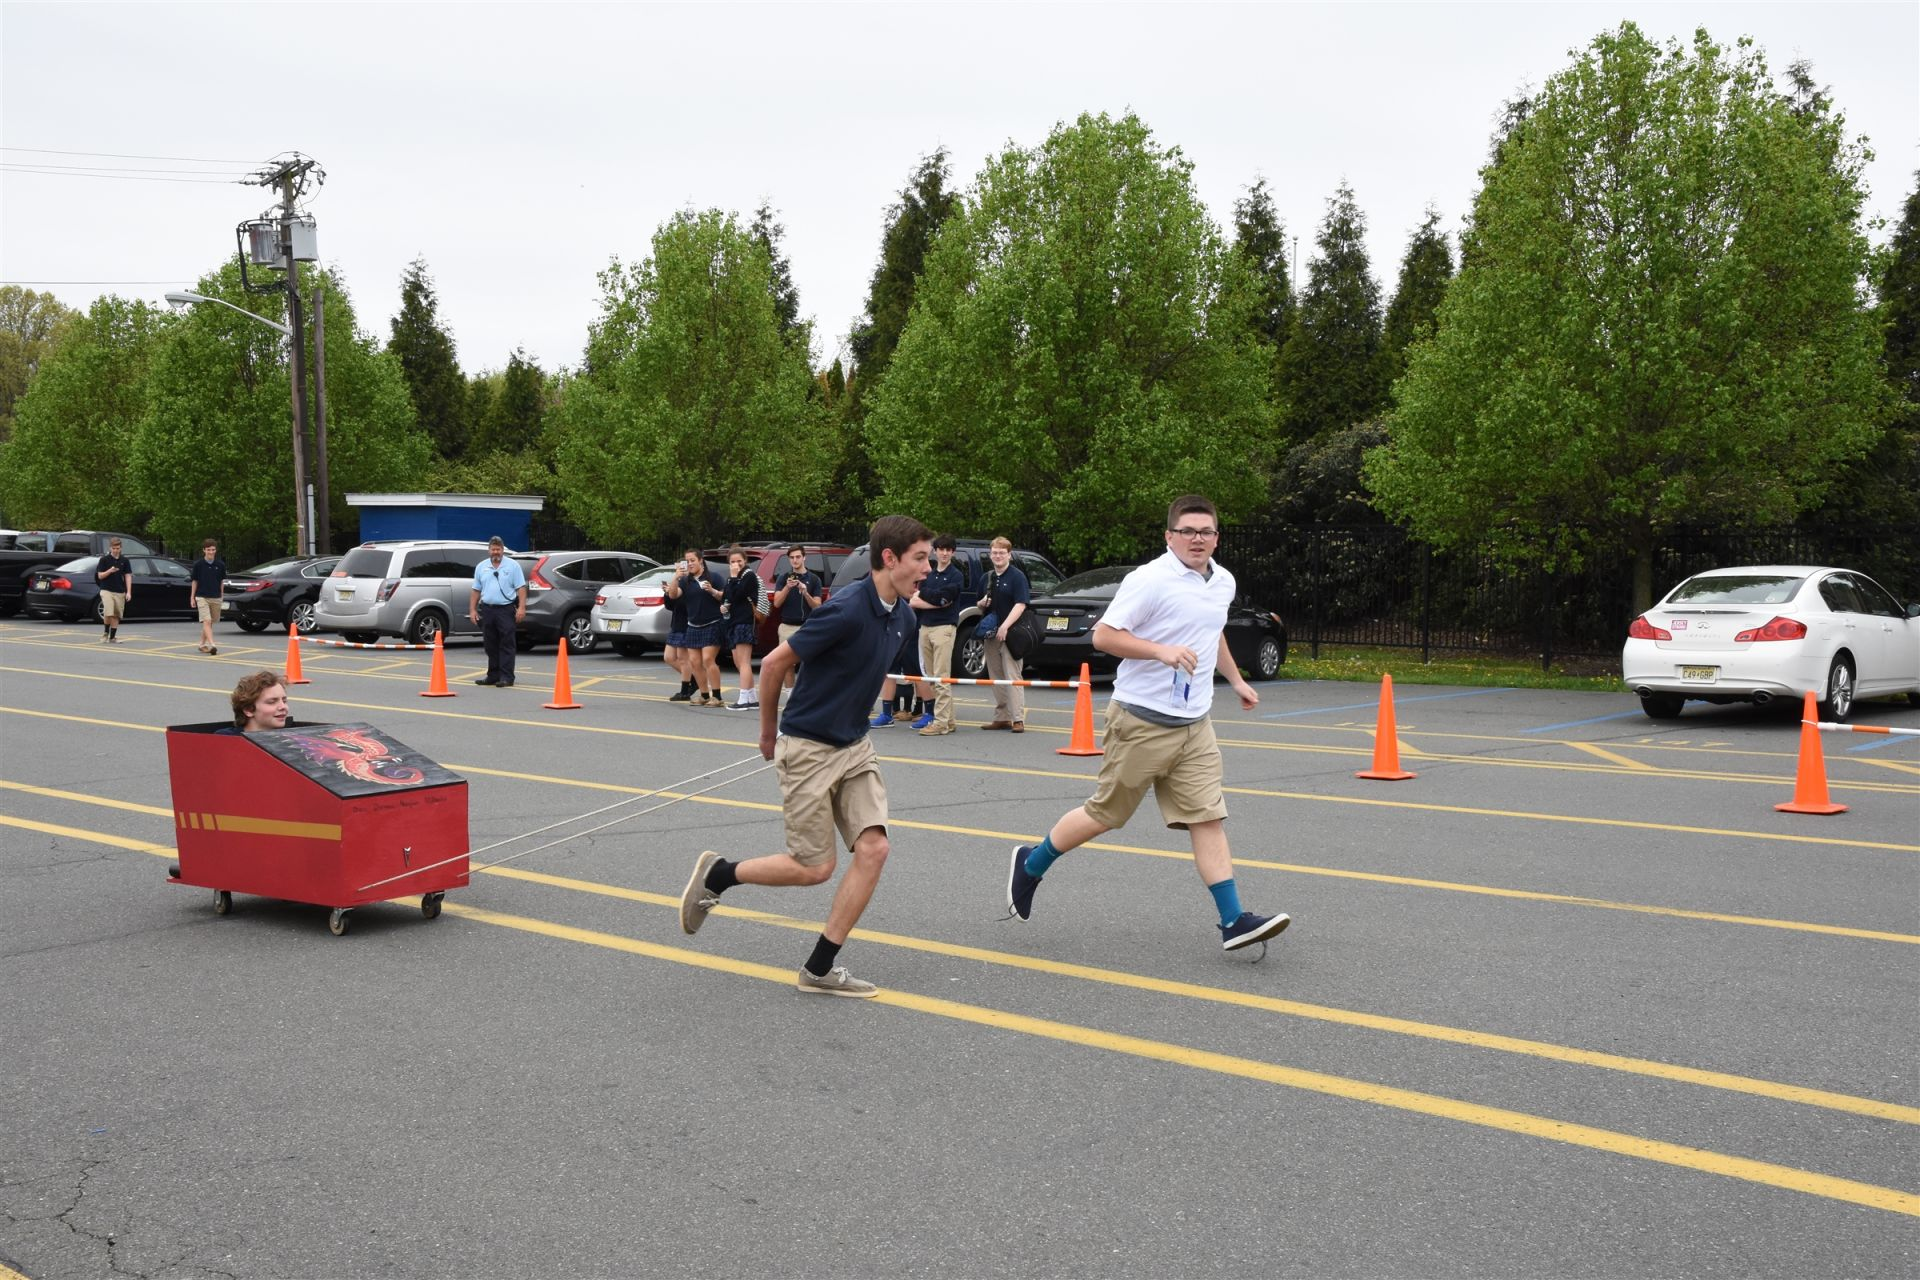 Annual Chariot Race sponsored by the Latin Club Students spent Easter Break building and designing the chariot.